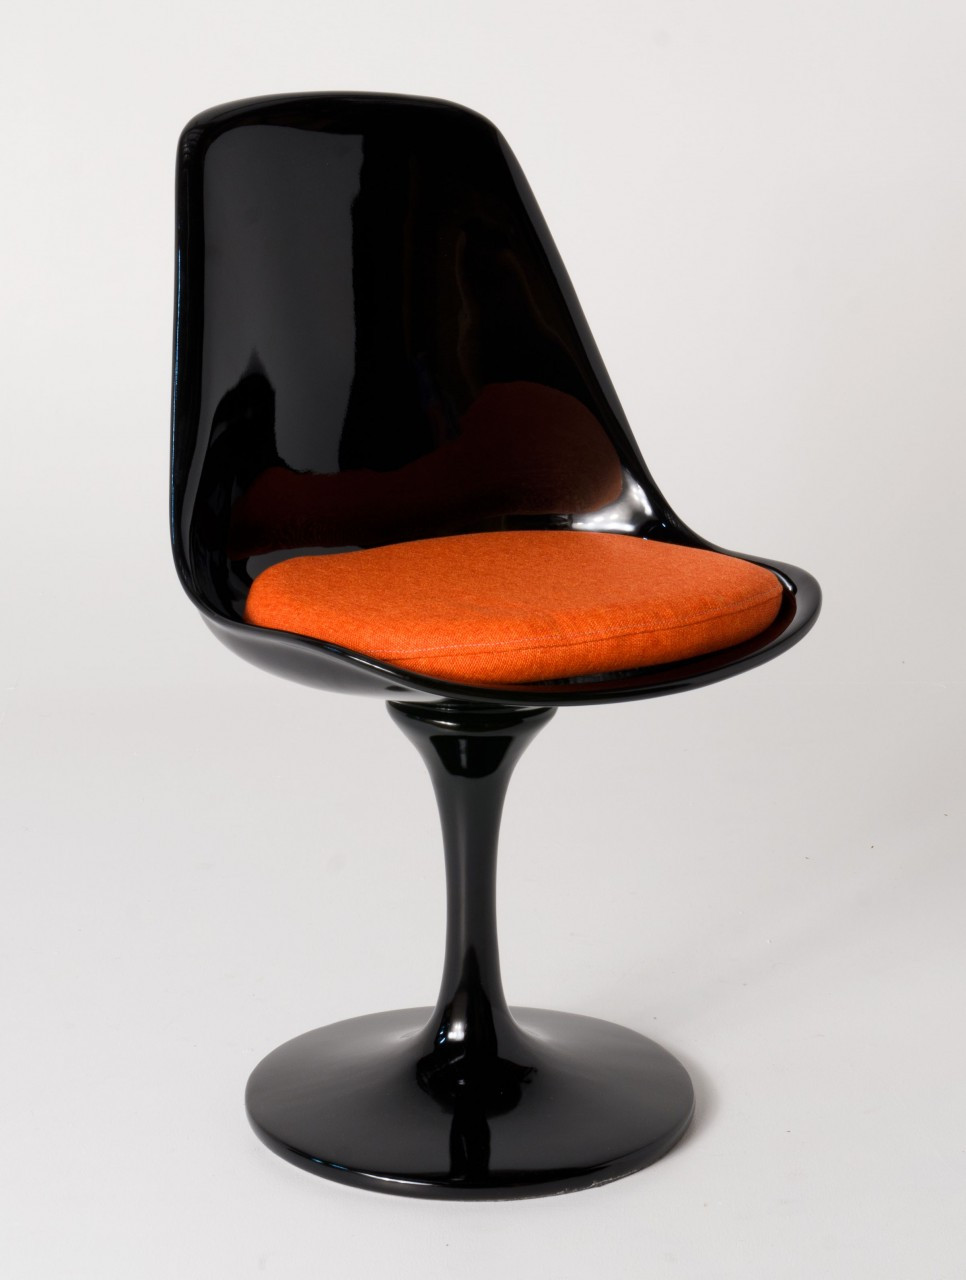 Replica tulip chair black fibreglass with orange cushion replica eero saarinen tulip chair - Replica tulip chair ...